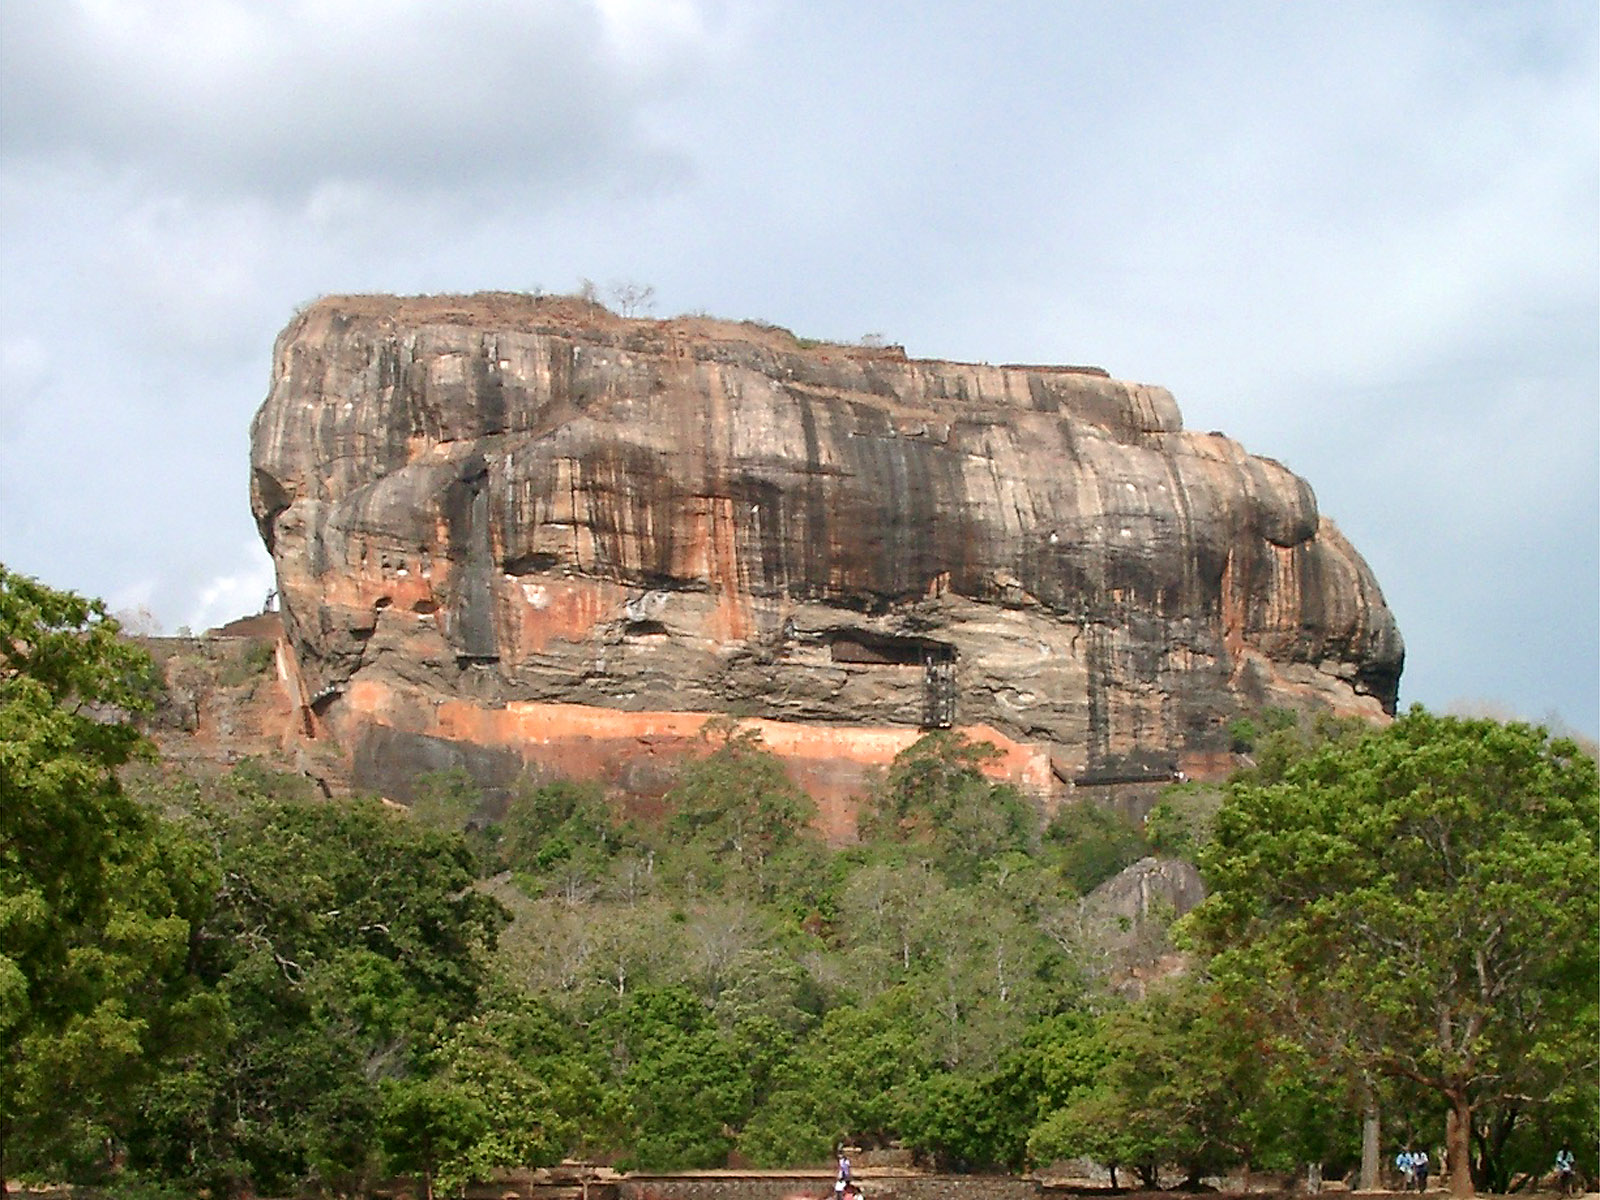 Sigiriya Sri Lanka  City pictures : Description Sri Lanka Sigiriya Rock